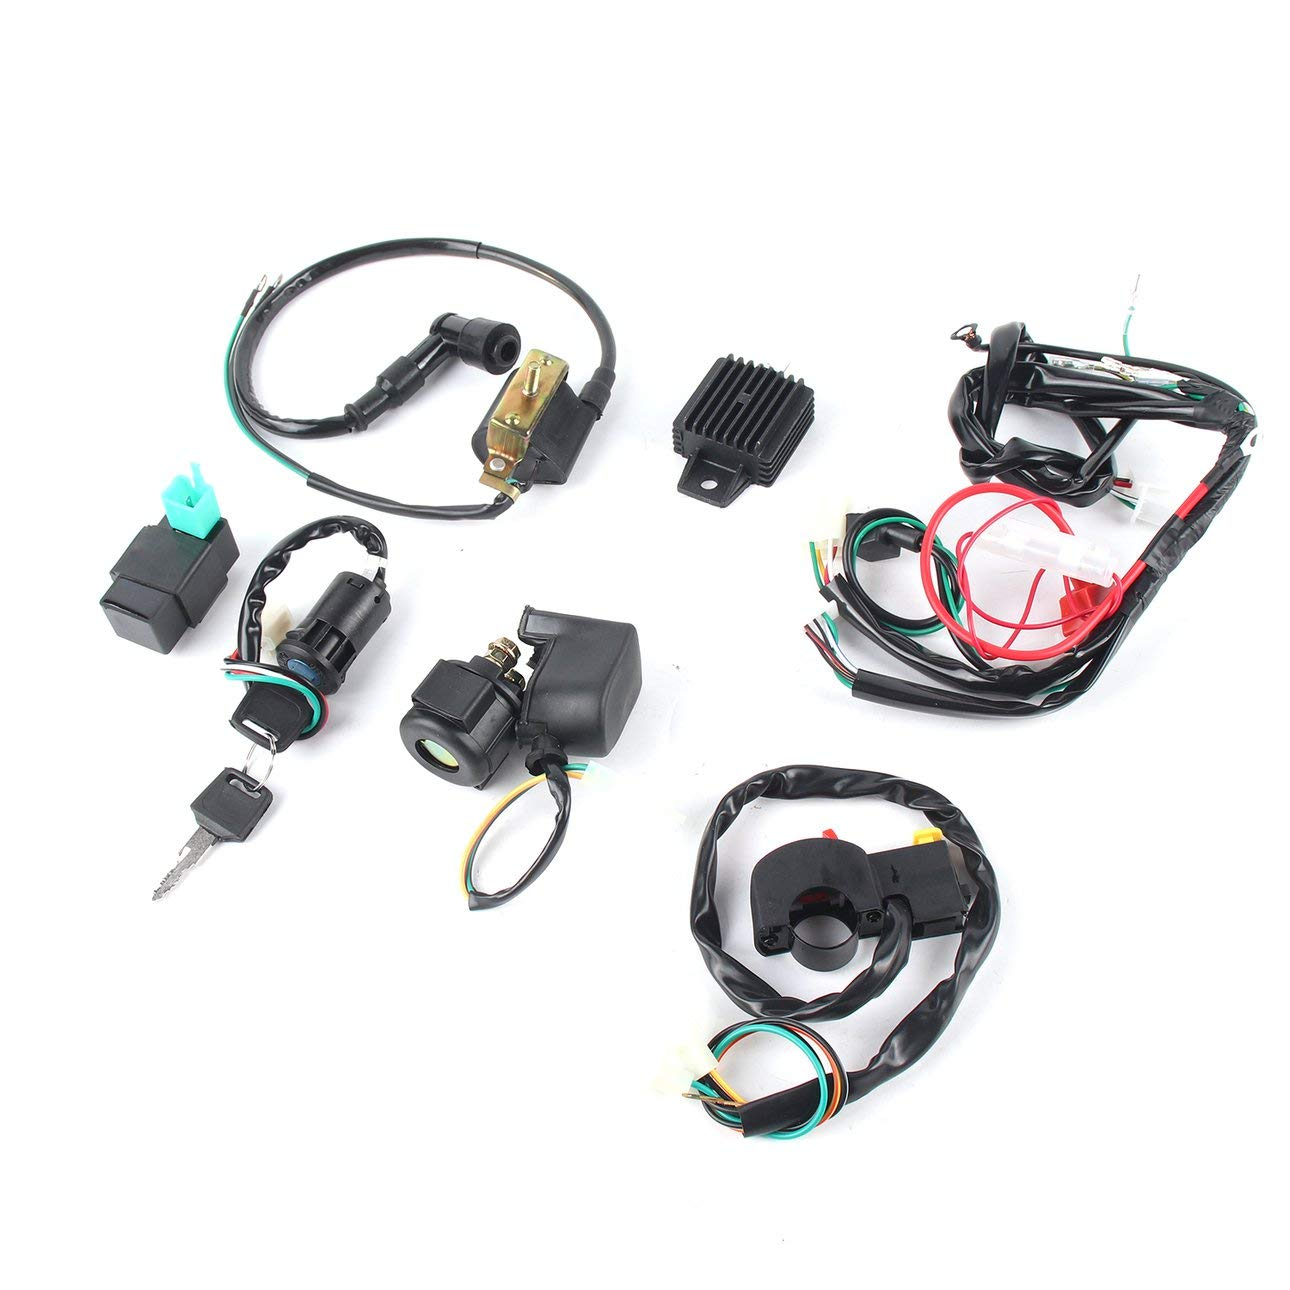 Black Professional Motorcycle CDI Wiring Harness Loom Ignition Solenoid Coil Rectifier for 50cc-125cc Pit Quad Dirt Bike ATV